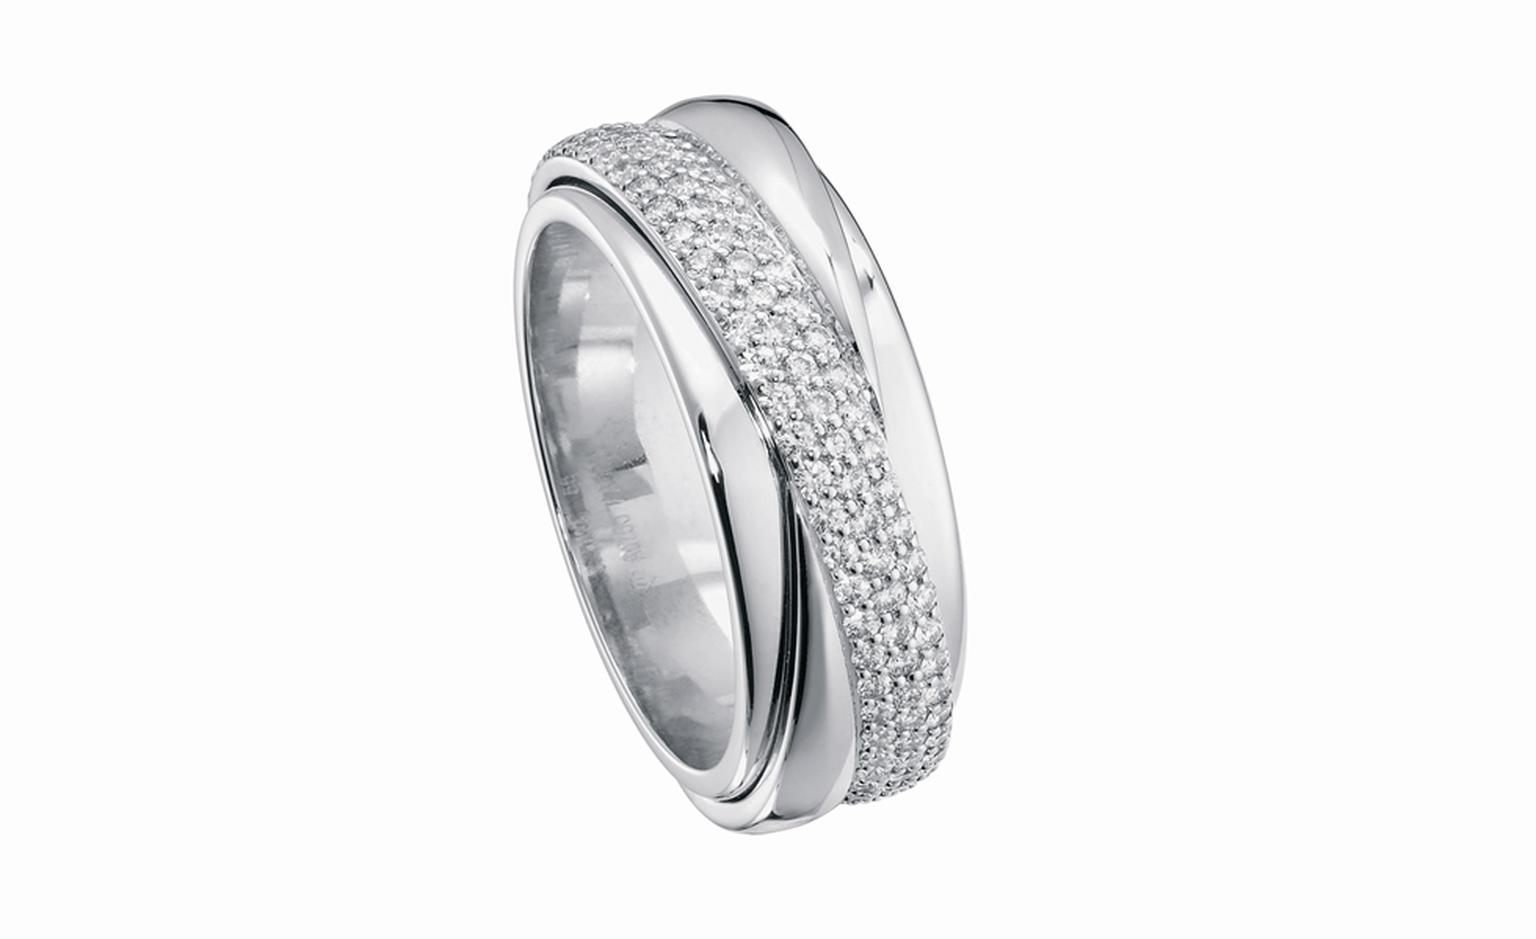 Piaget diamond band £3,060